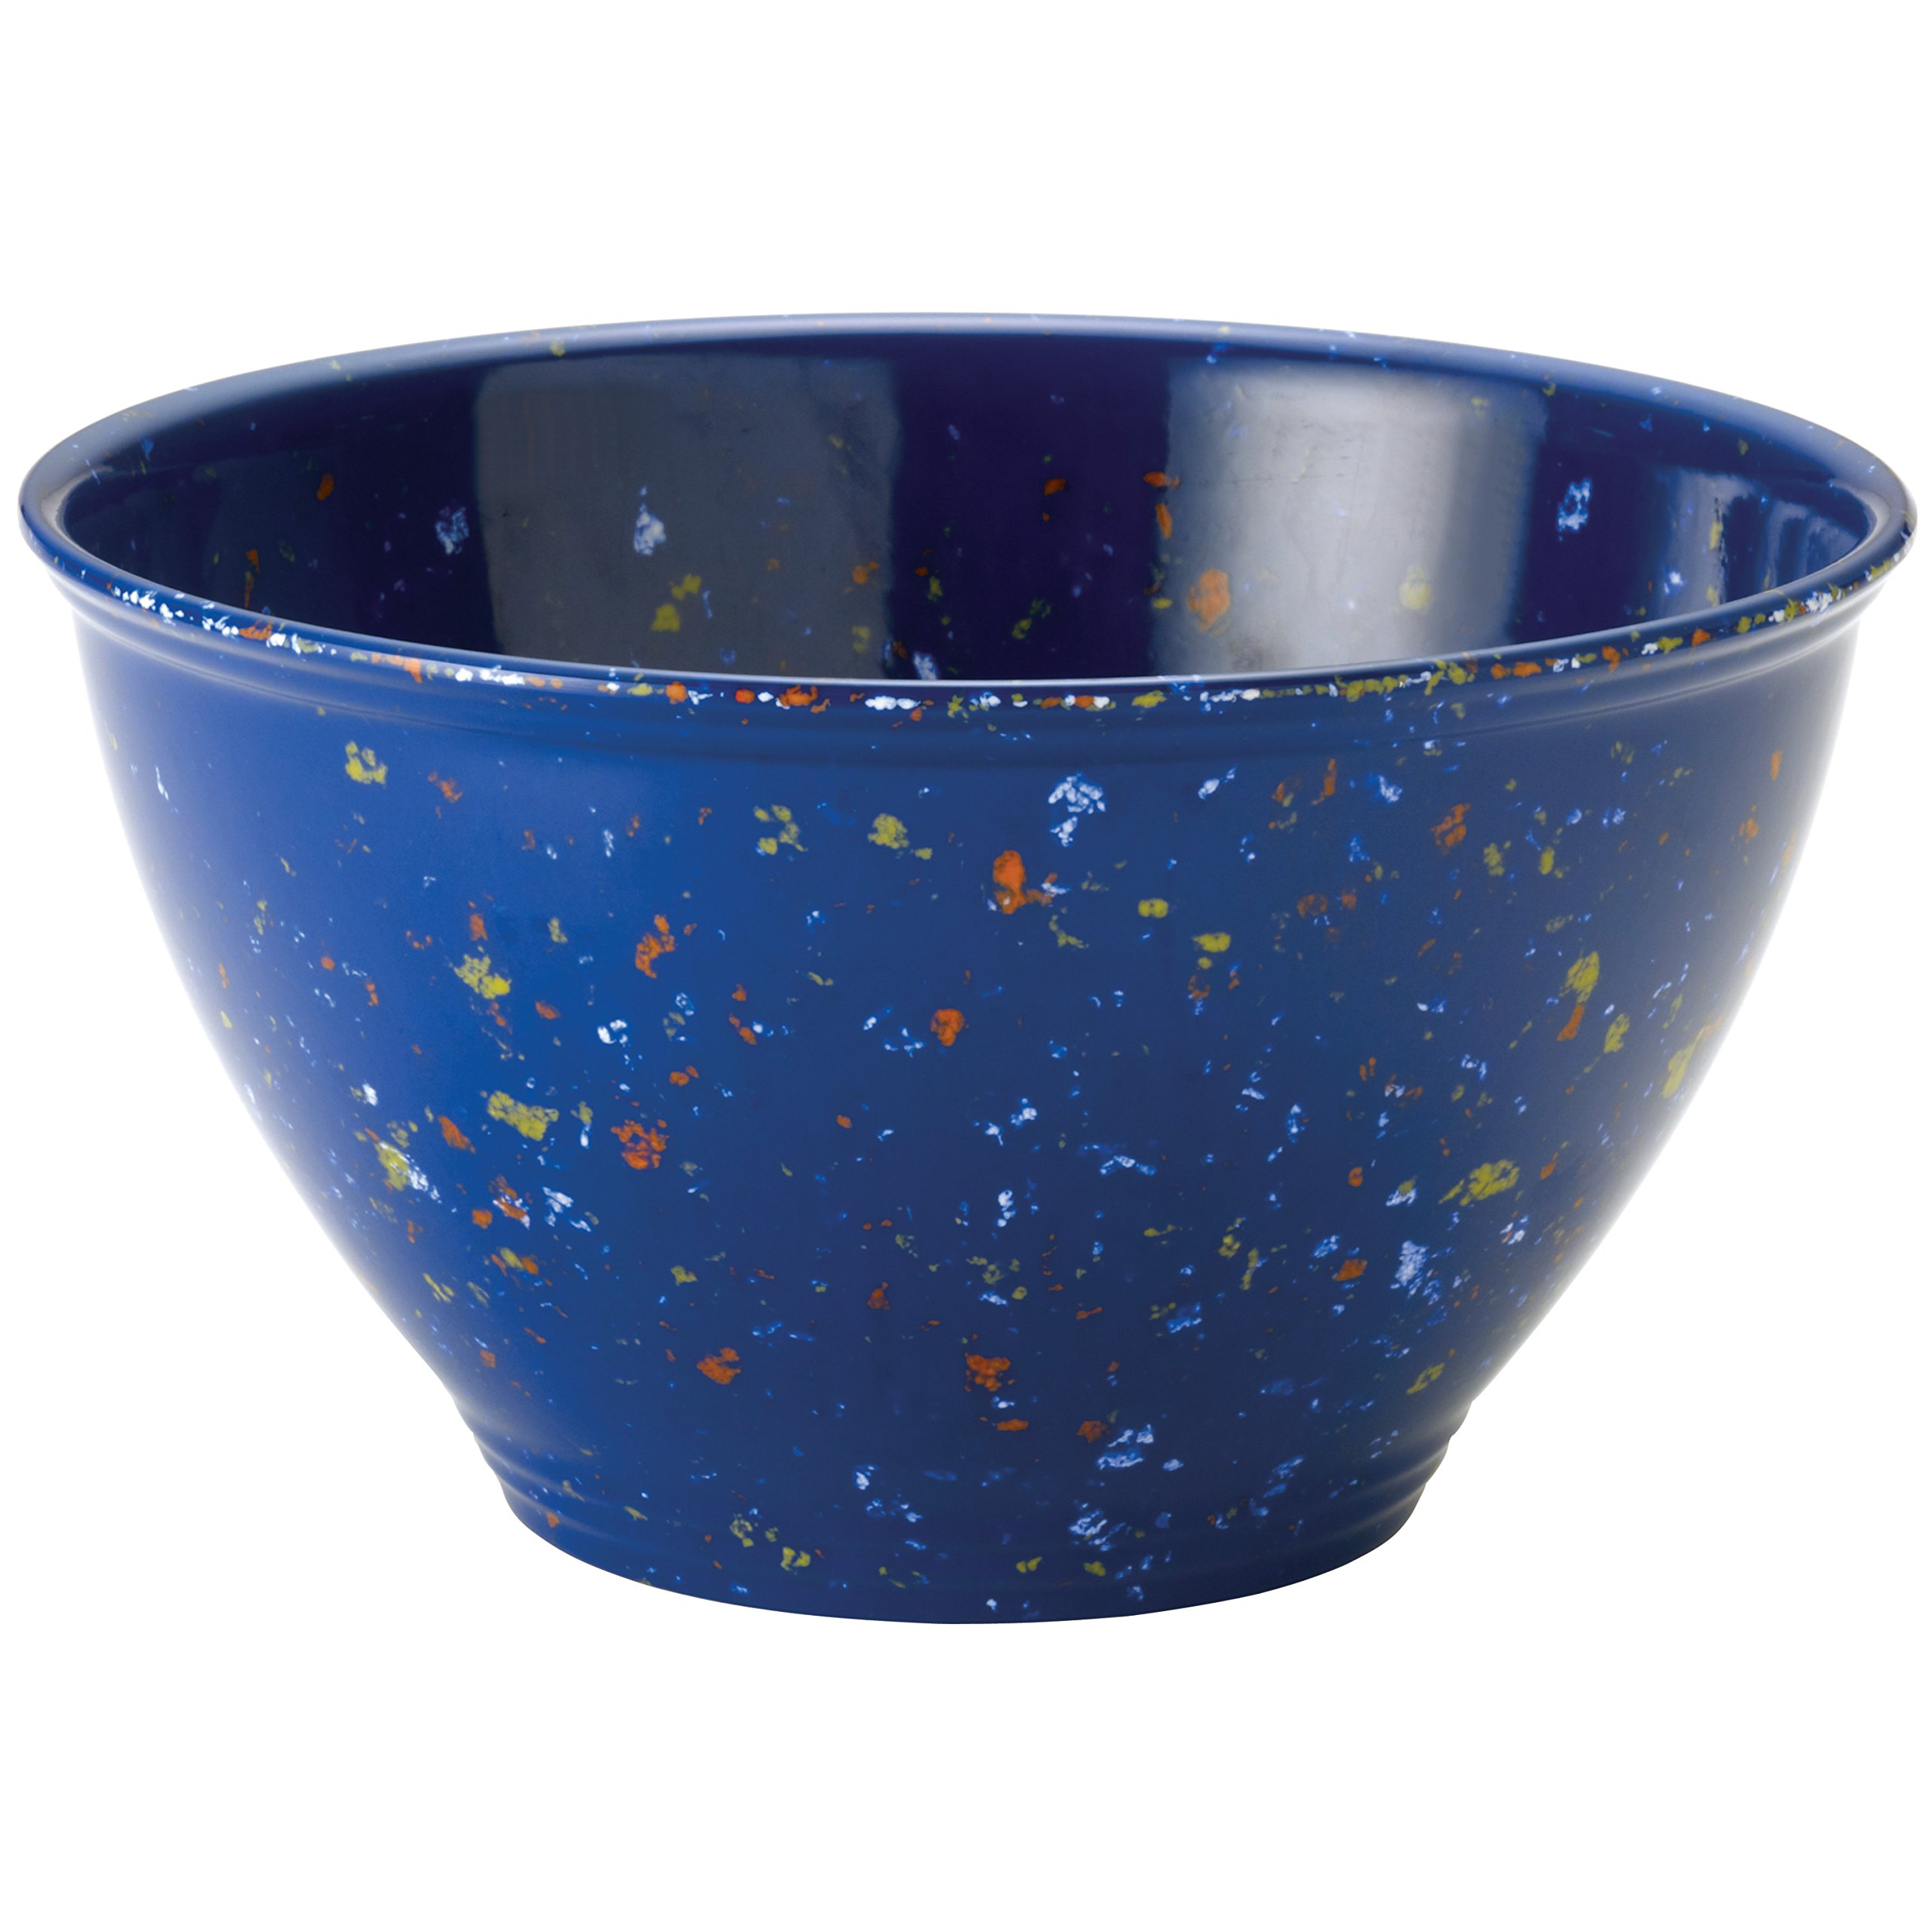 Rachael Ray Tools Garbage Bowl with Non-Slip Rubber Base, Blue